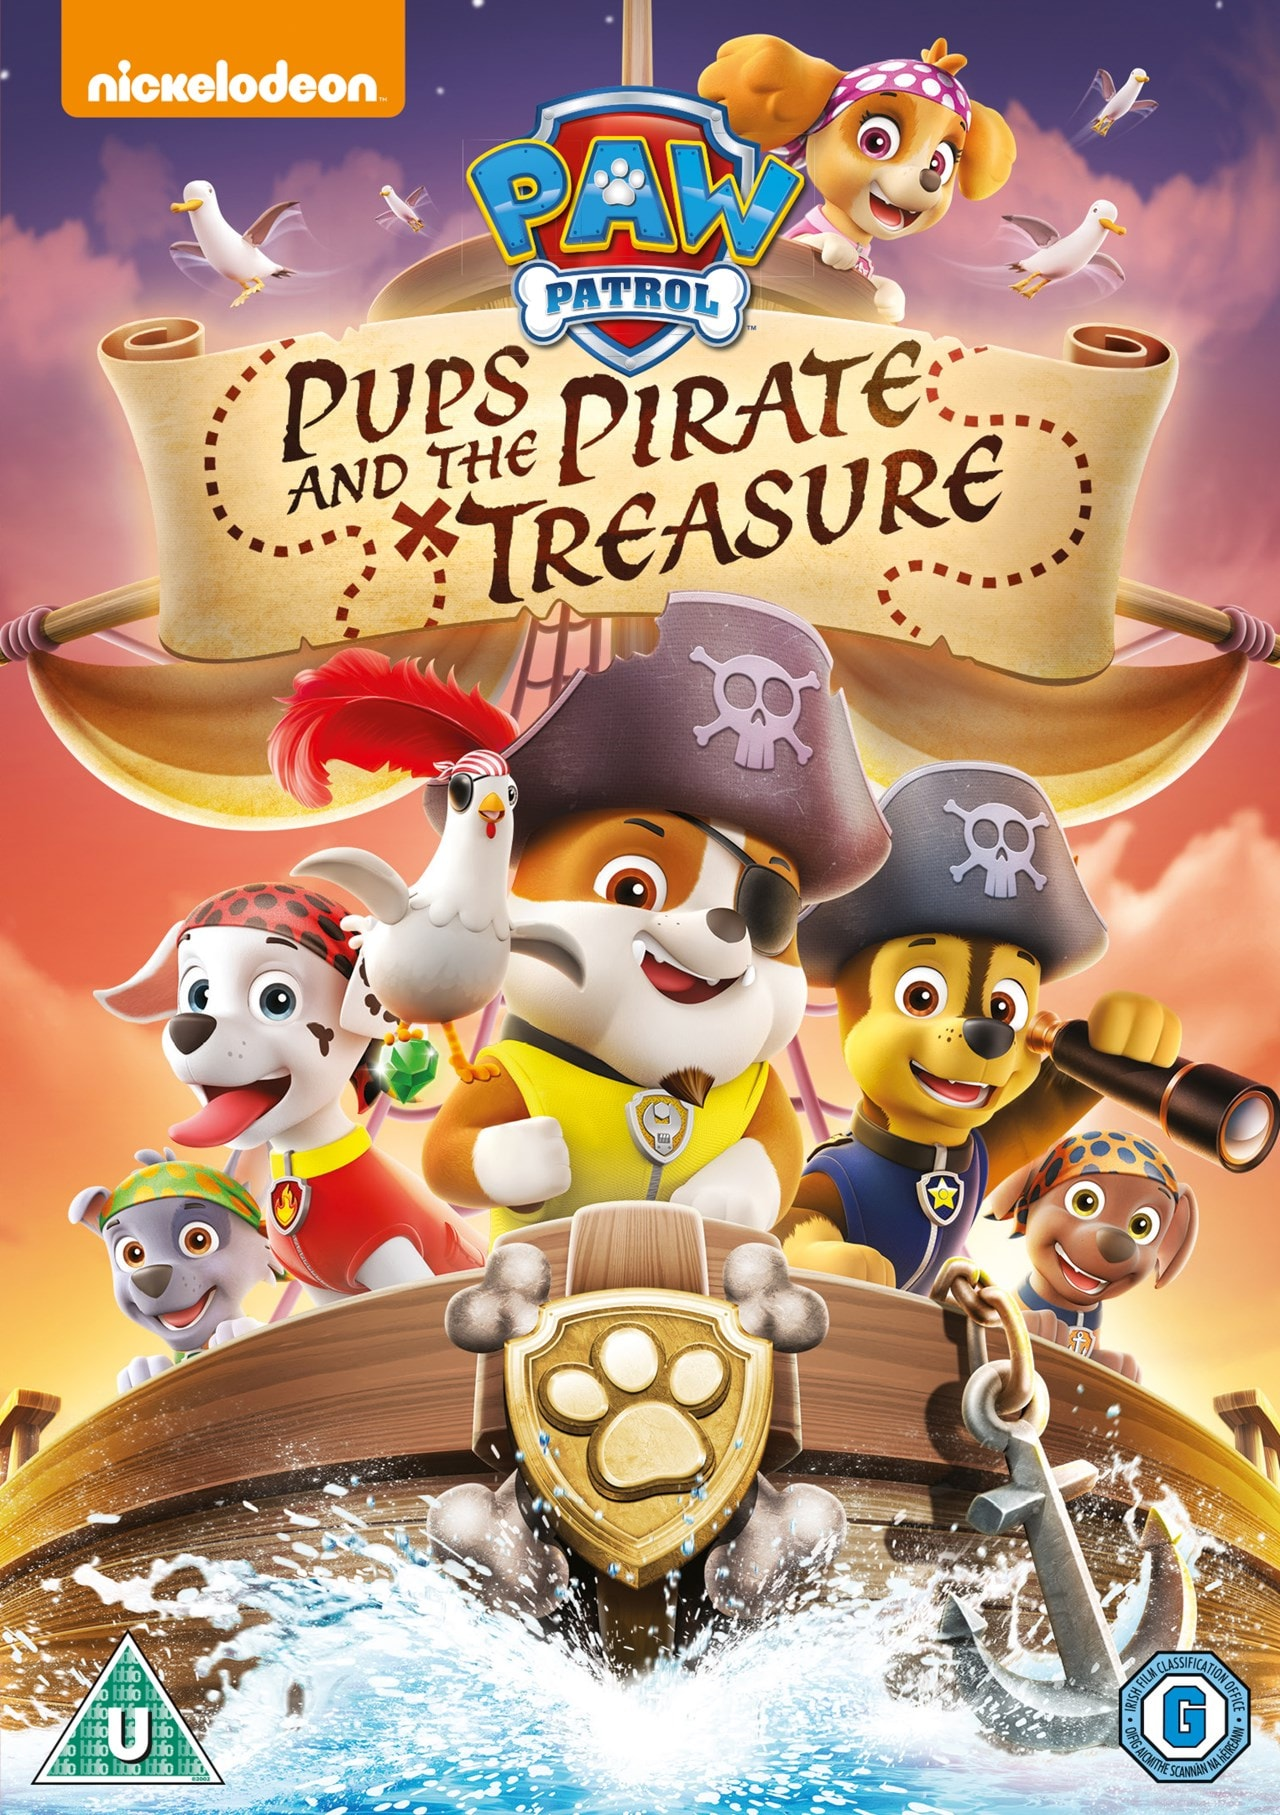 Paw Patrol: Pups and the Pirate Treasure - 1